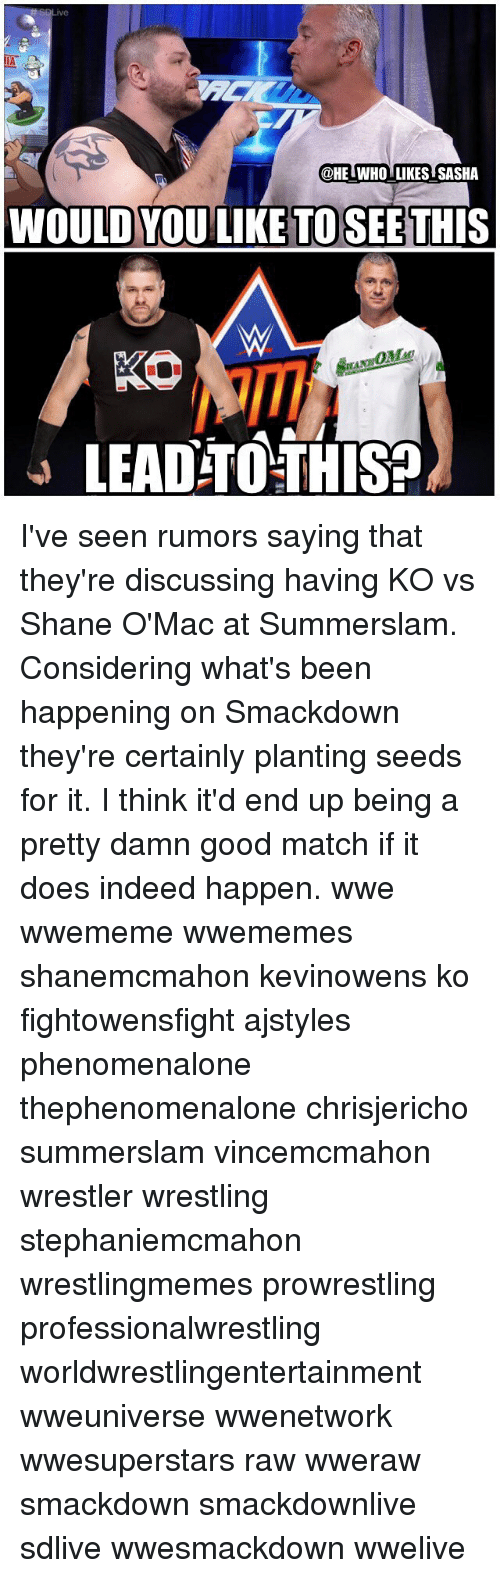 Memes, Wrestling, and World Wrestling Entertainment: @HE IWHO LIKES SASHA  WOULD YOU LIKE TO SEETHIS  SER  LEAD-TO THISS I've seen rumors saying that they're discussing having KO vs Shane O'Mac at Summerslam. Considering what's been happening on Smackdown they're certainly planting seeds for it. I think it'd end up being a pretty damn good match if it does indeed happen. wwe wwememe wwememes shanemcmahon kevinowens ko fightowensfight ajstyles phenomenalone thephenomenalone chrisjericho summerslam vincemcmahon wrestler wrestling stephaniemcmahon wrestlingmemes prowrestling professionalwrestling worldwrestlingentertainment wweuniverse wwenetwork wwesuperstars raw wweraw smackdown smackdownlive sdlive wwesmackdown wwelive